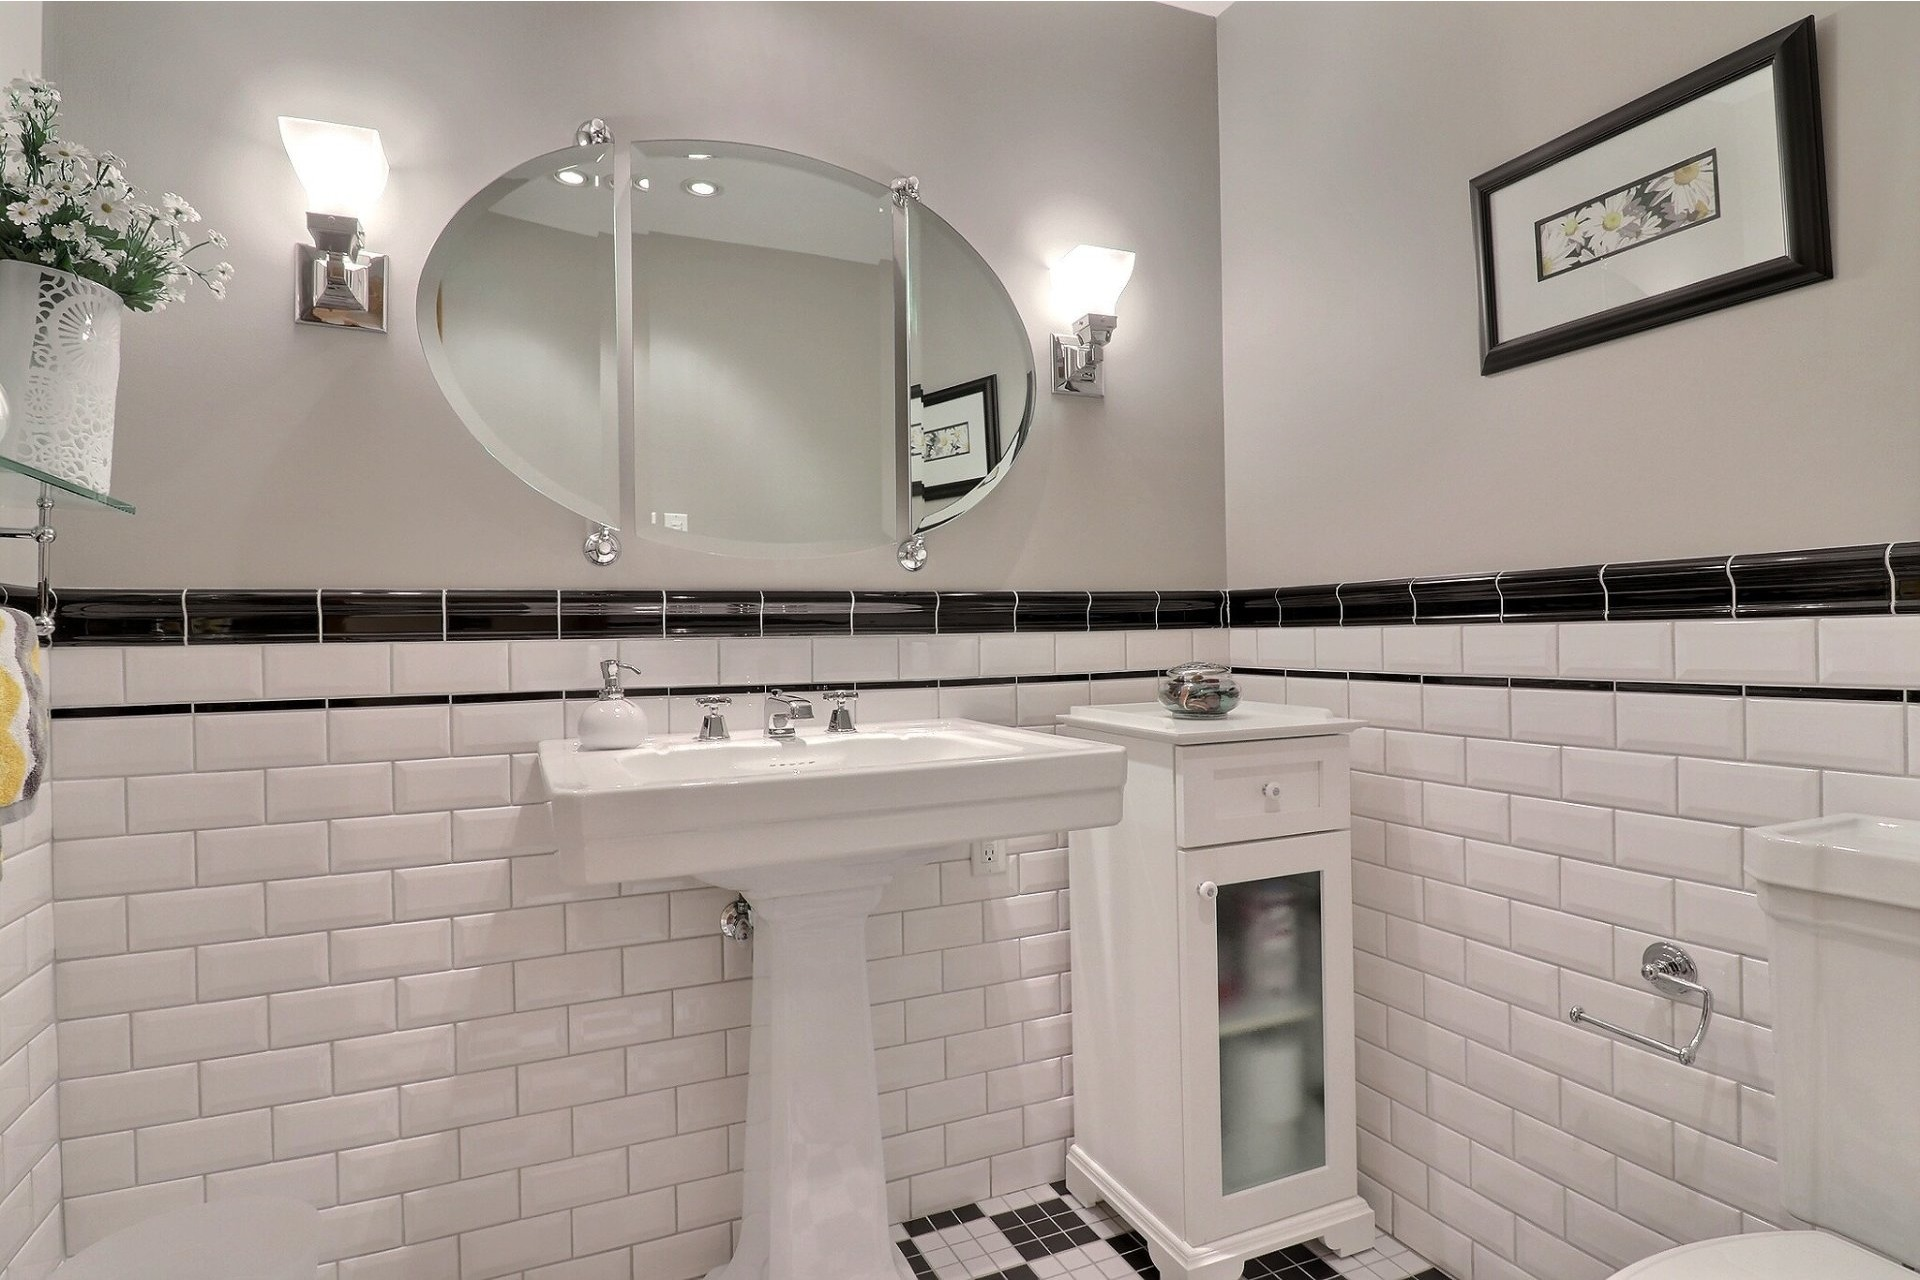 image 22 - House For sale Duvernay Laval